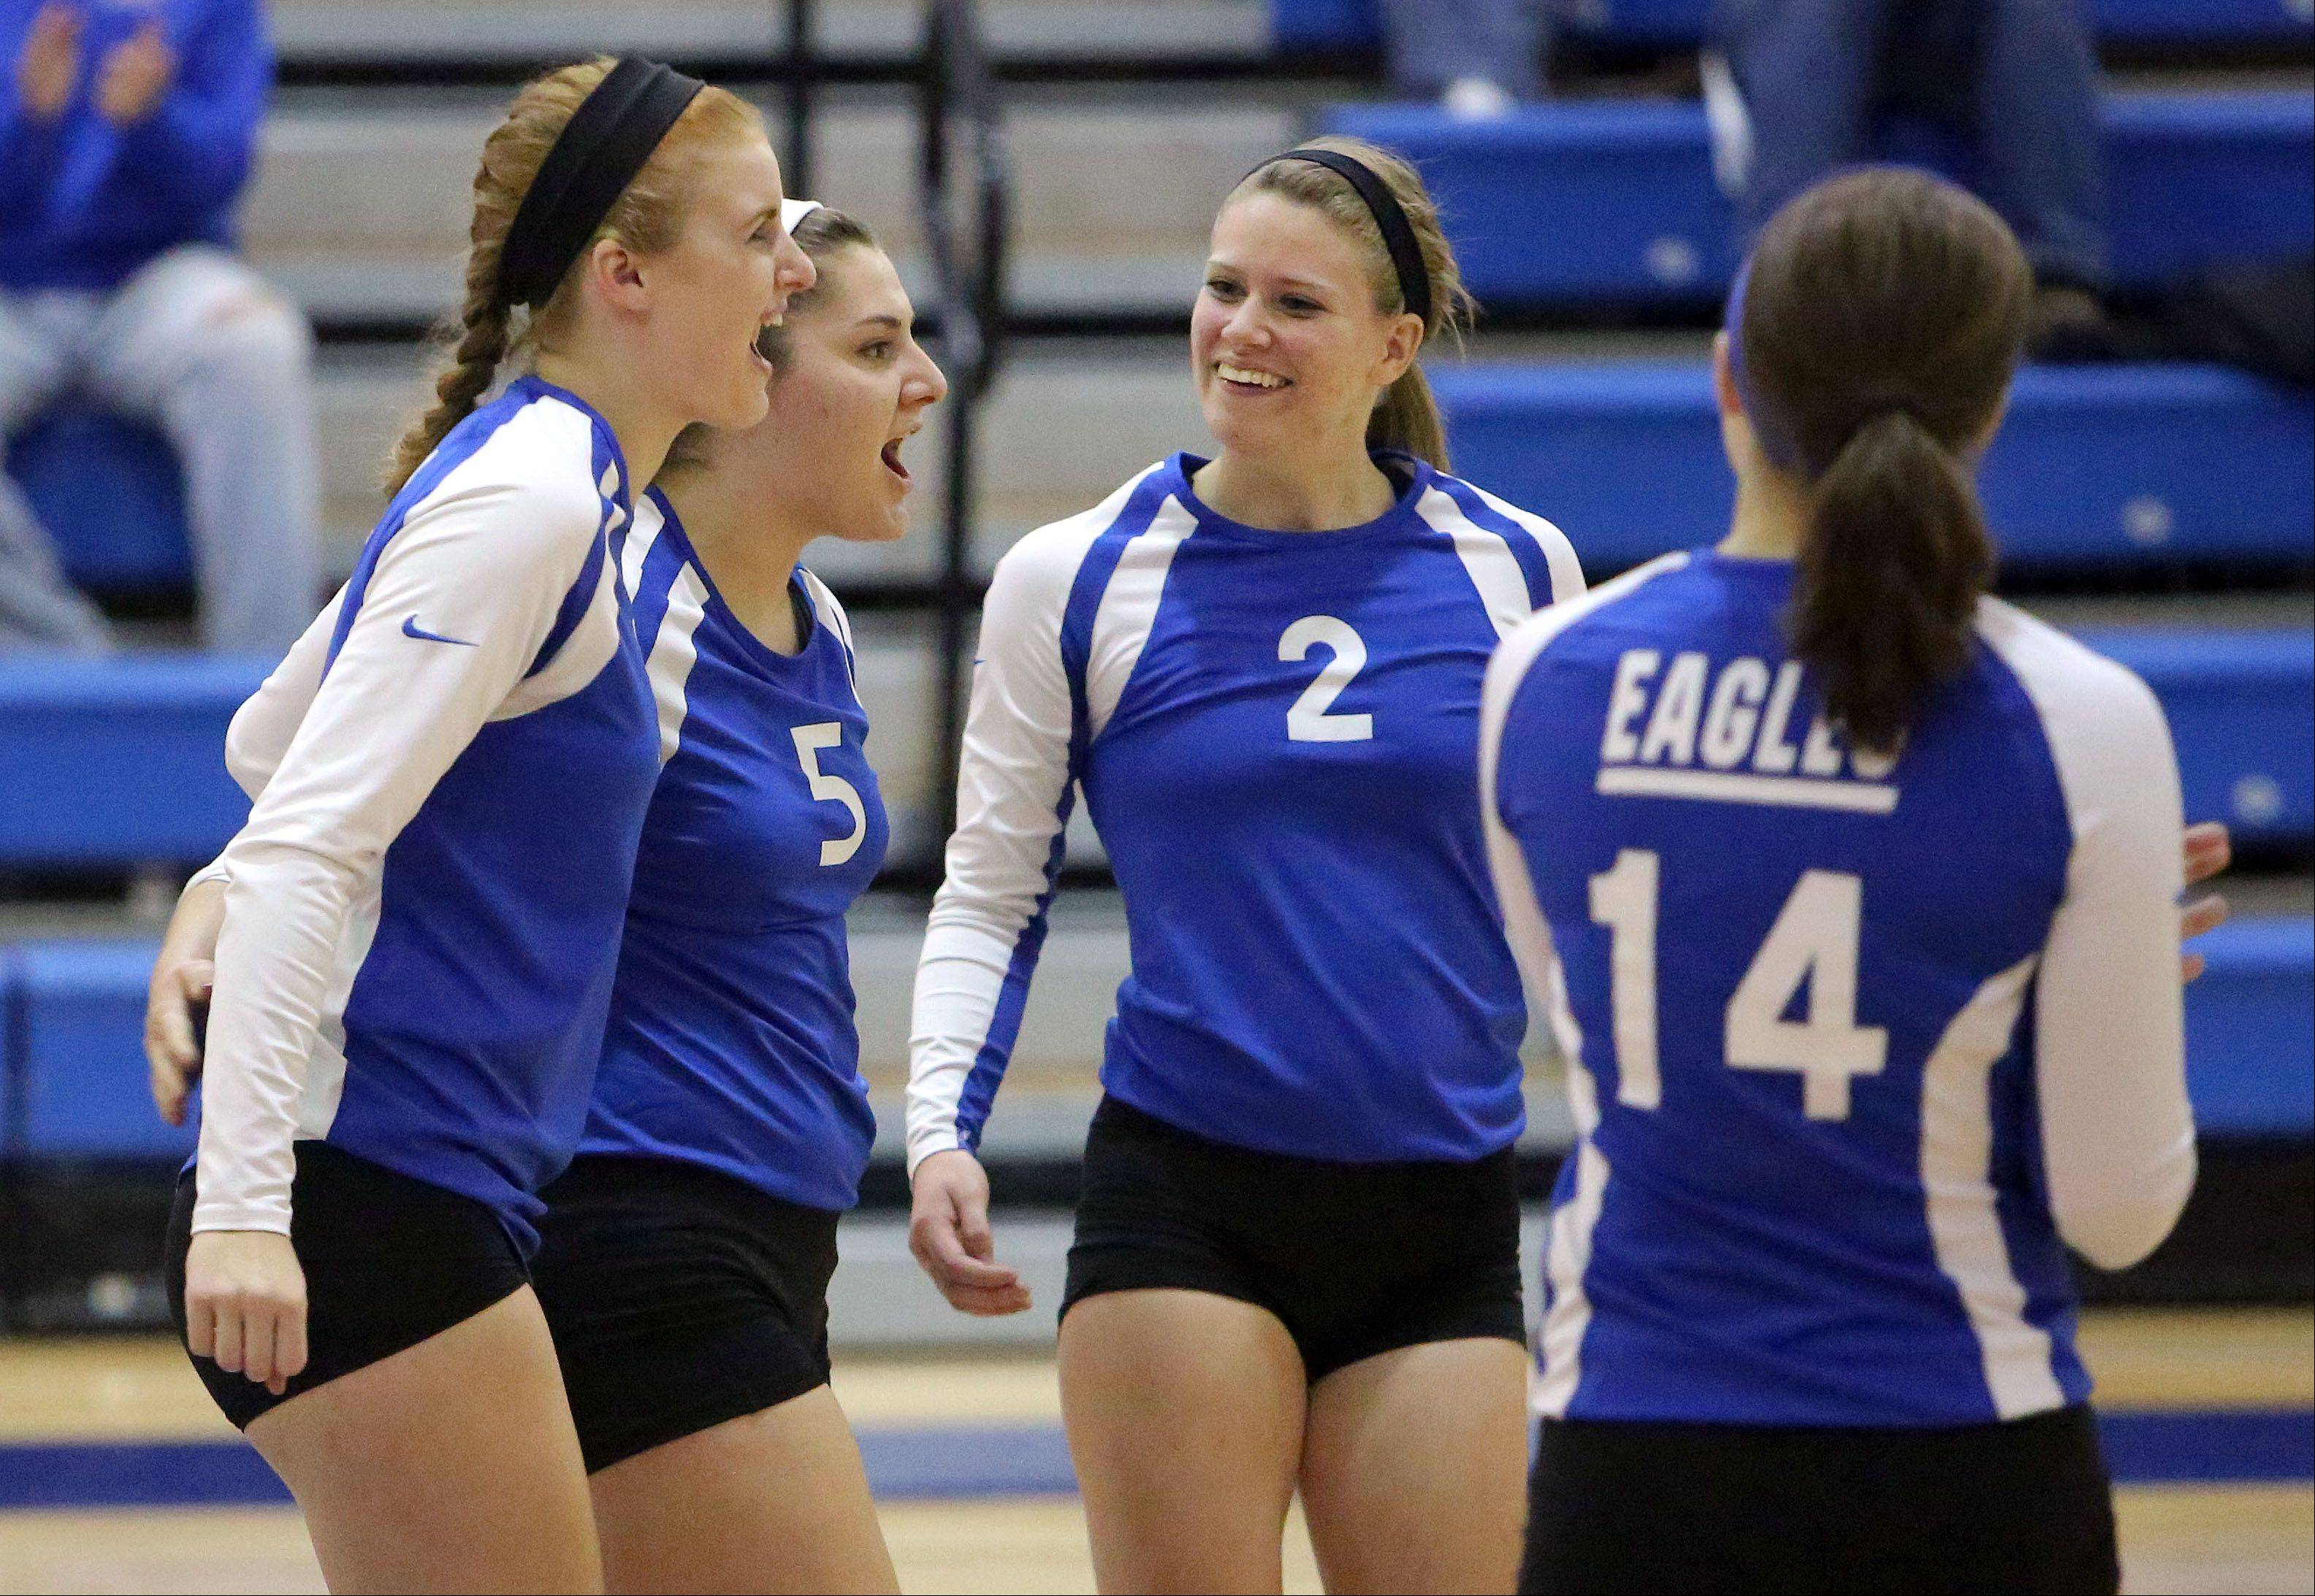 Lakes' Lisa Buehler (2) and her teammates celebrate after winning the first game against Wauconda on Wednesday night at Lakes.